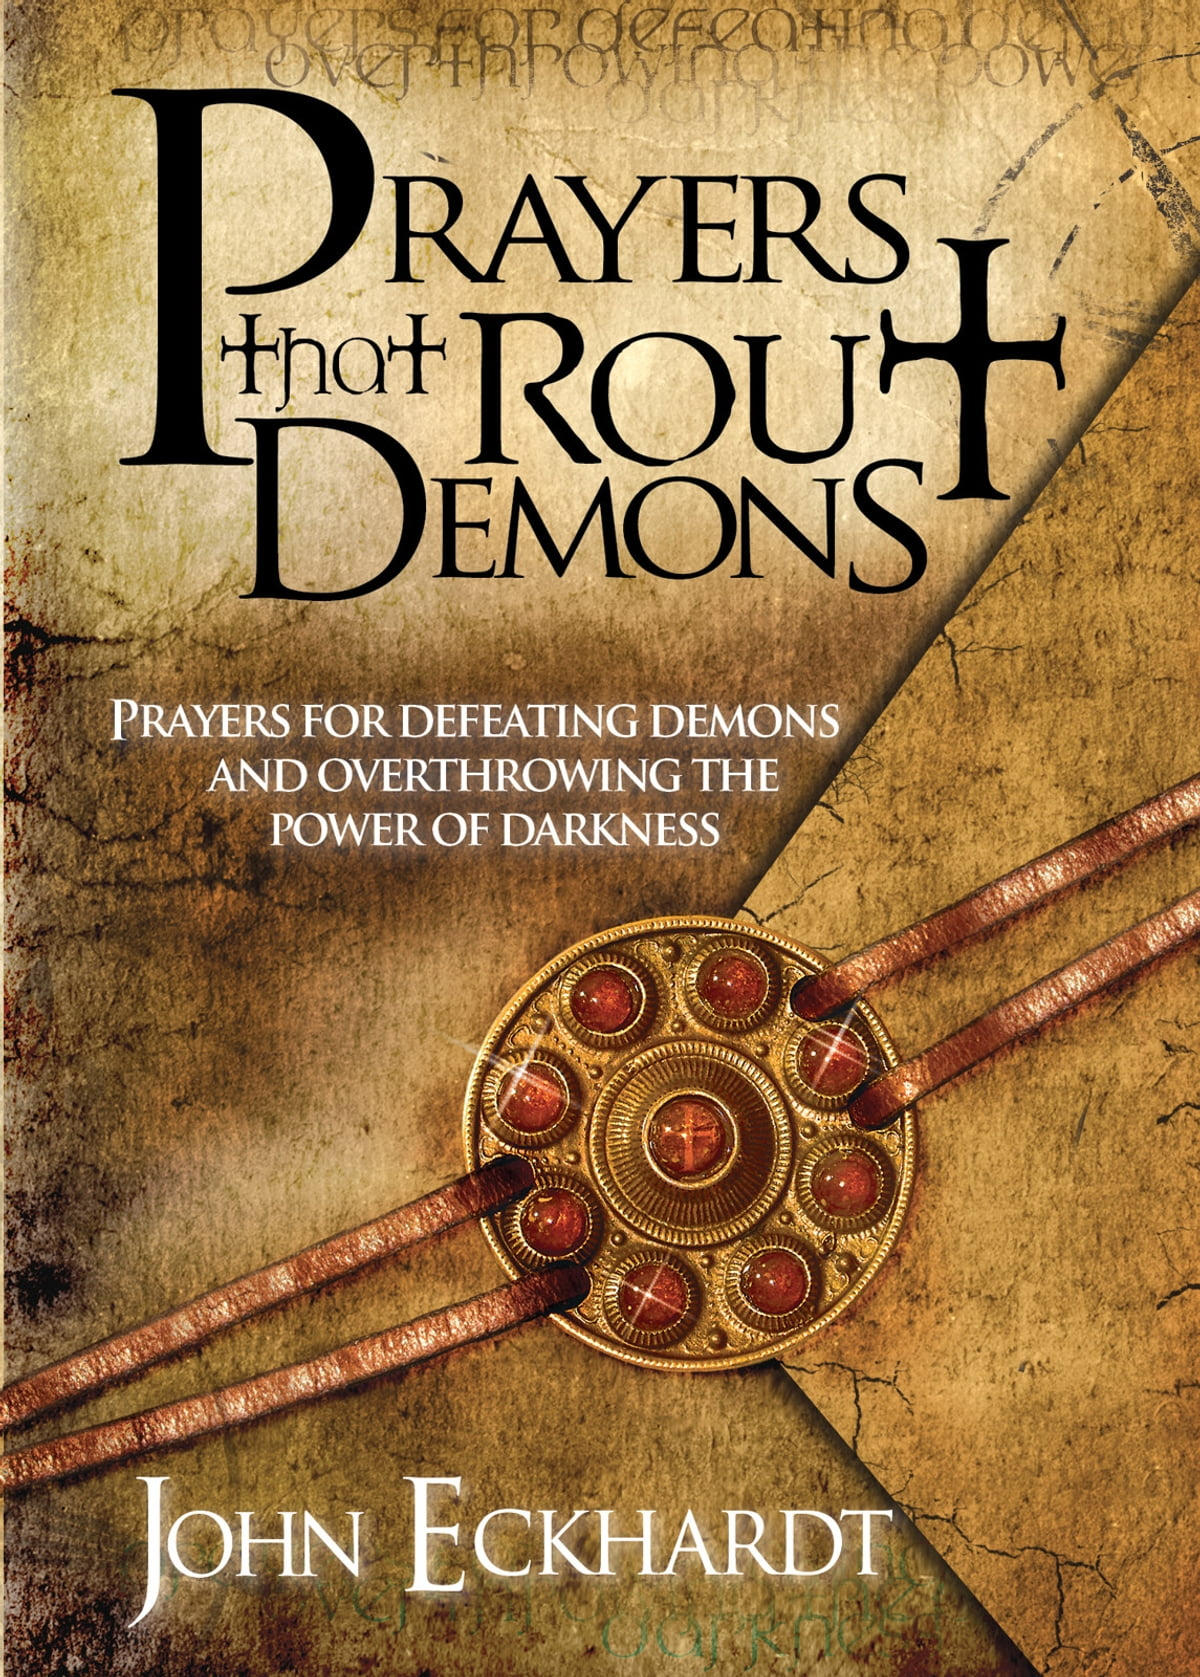 prayers that rout demons ebook by john eckhardt - 9781599793610